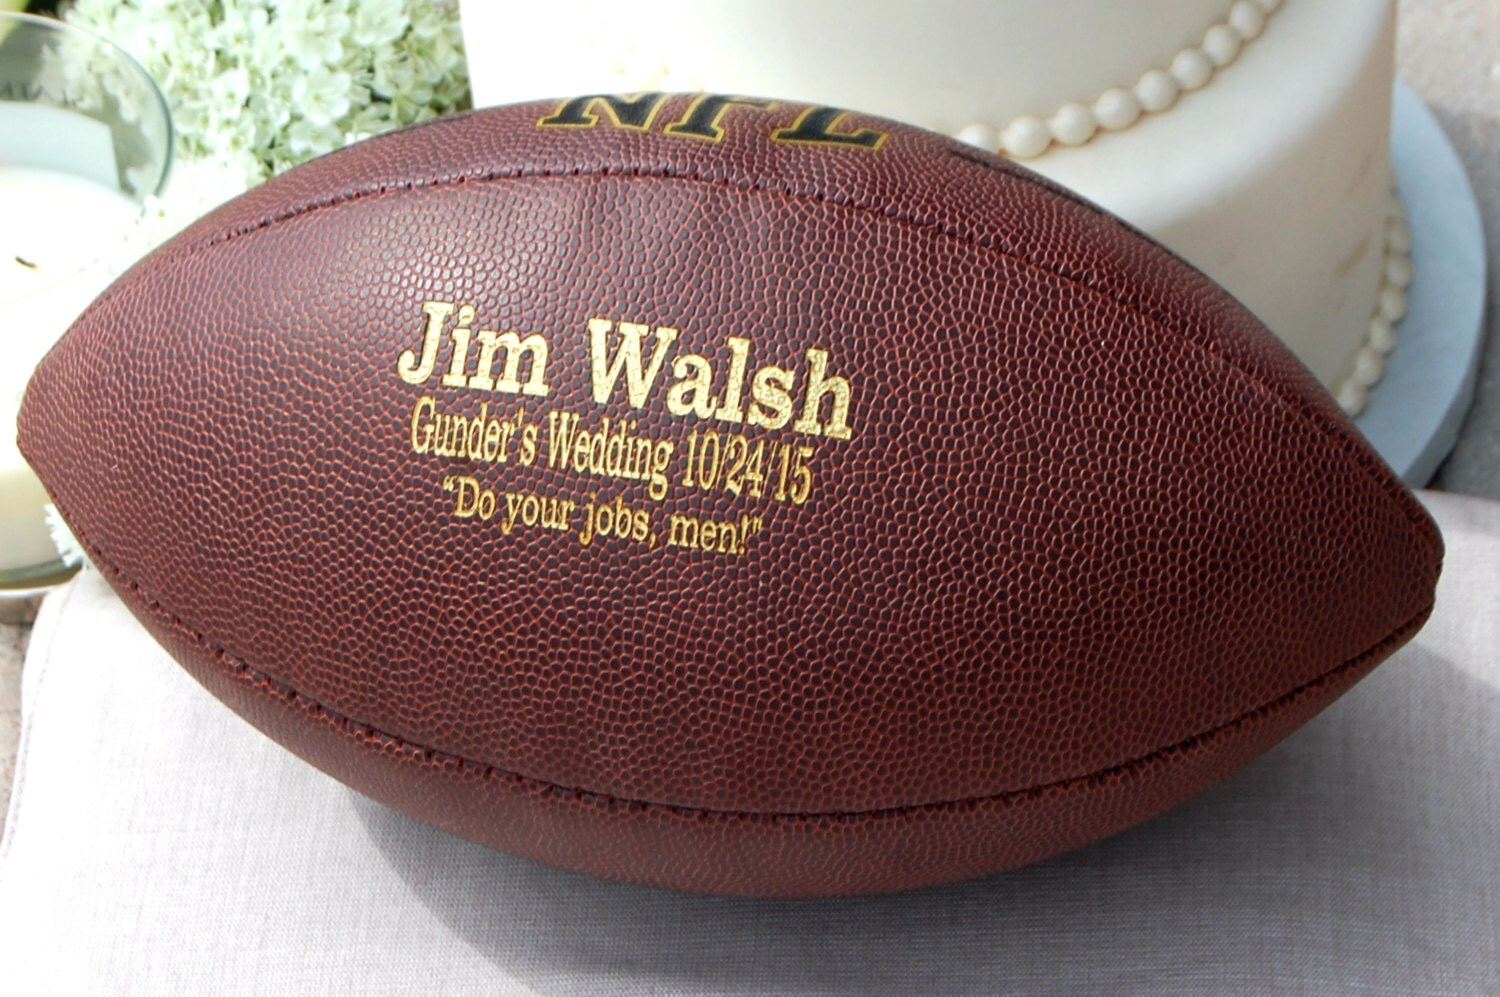 Personalized Wedding Gifts For Groomsmen: Personalized Football Ring Bearer Gift Groomsmen And Best